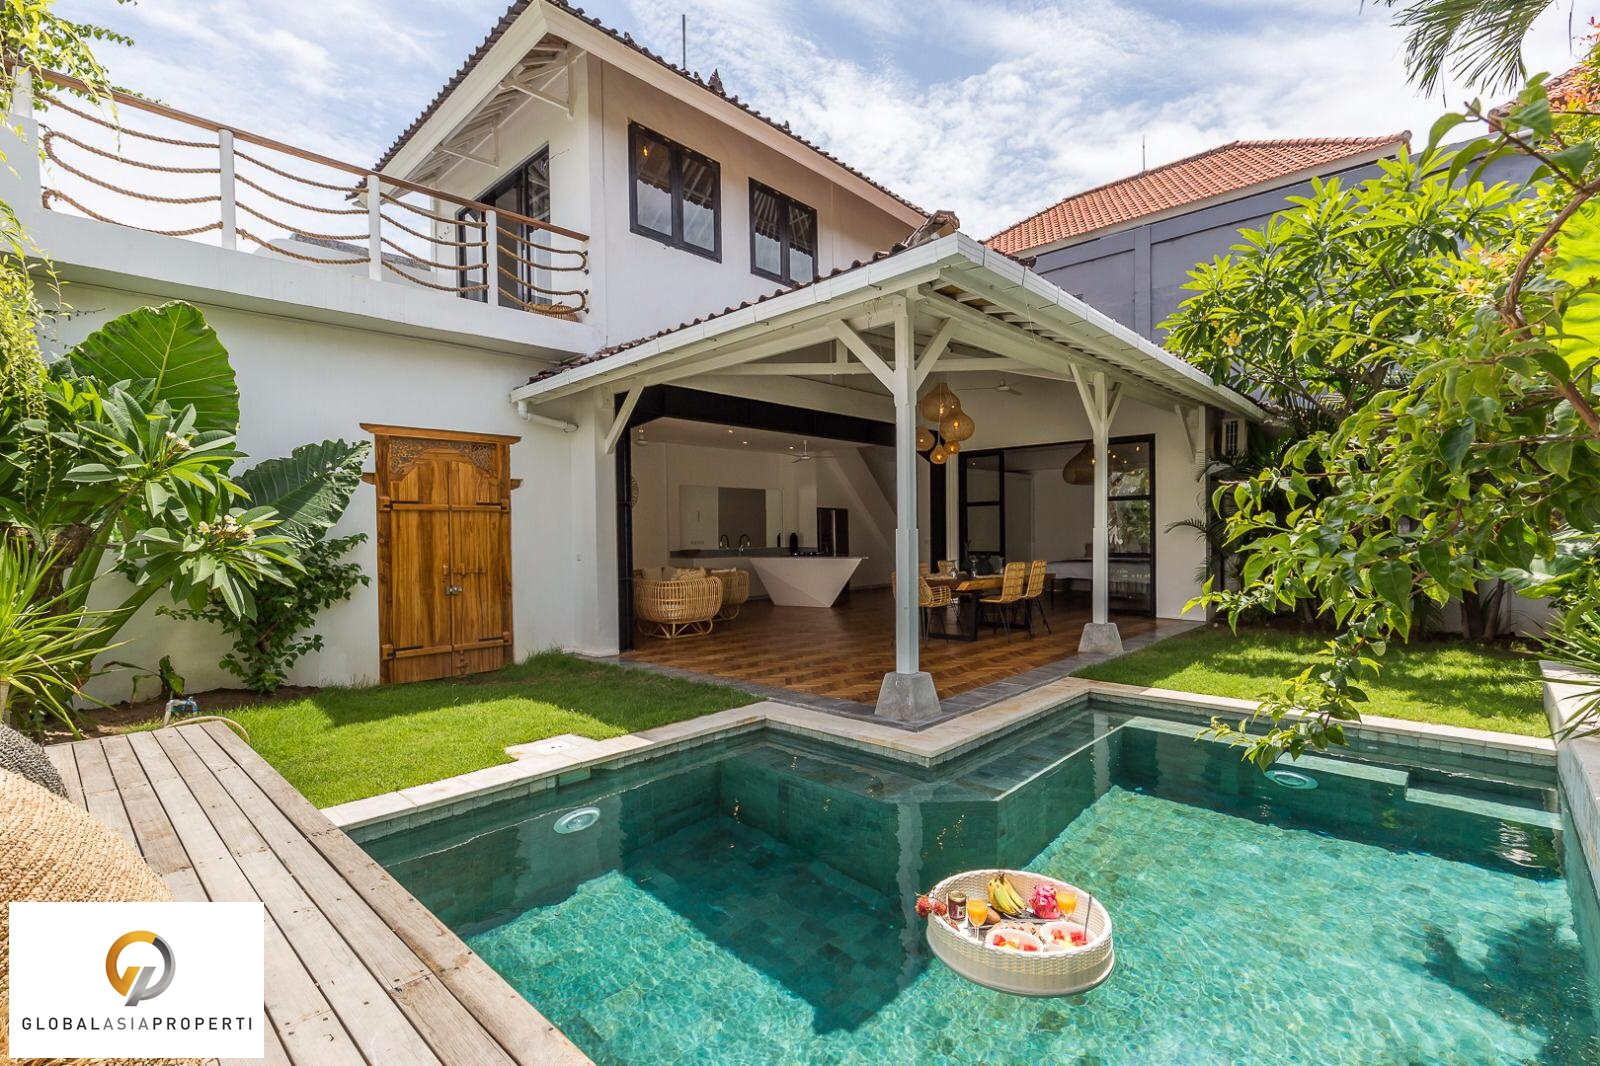 WhatsApp Image 2018 12 24 at 03.43.47 - BEAUTIFUL GORGEOUS VILLA IN SEMINYAK FOR LEASE